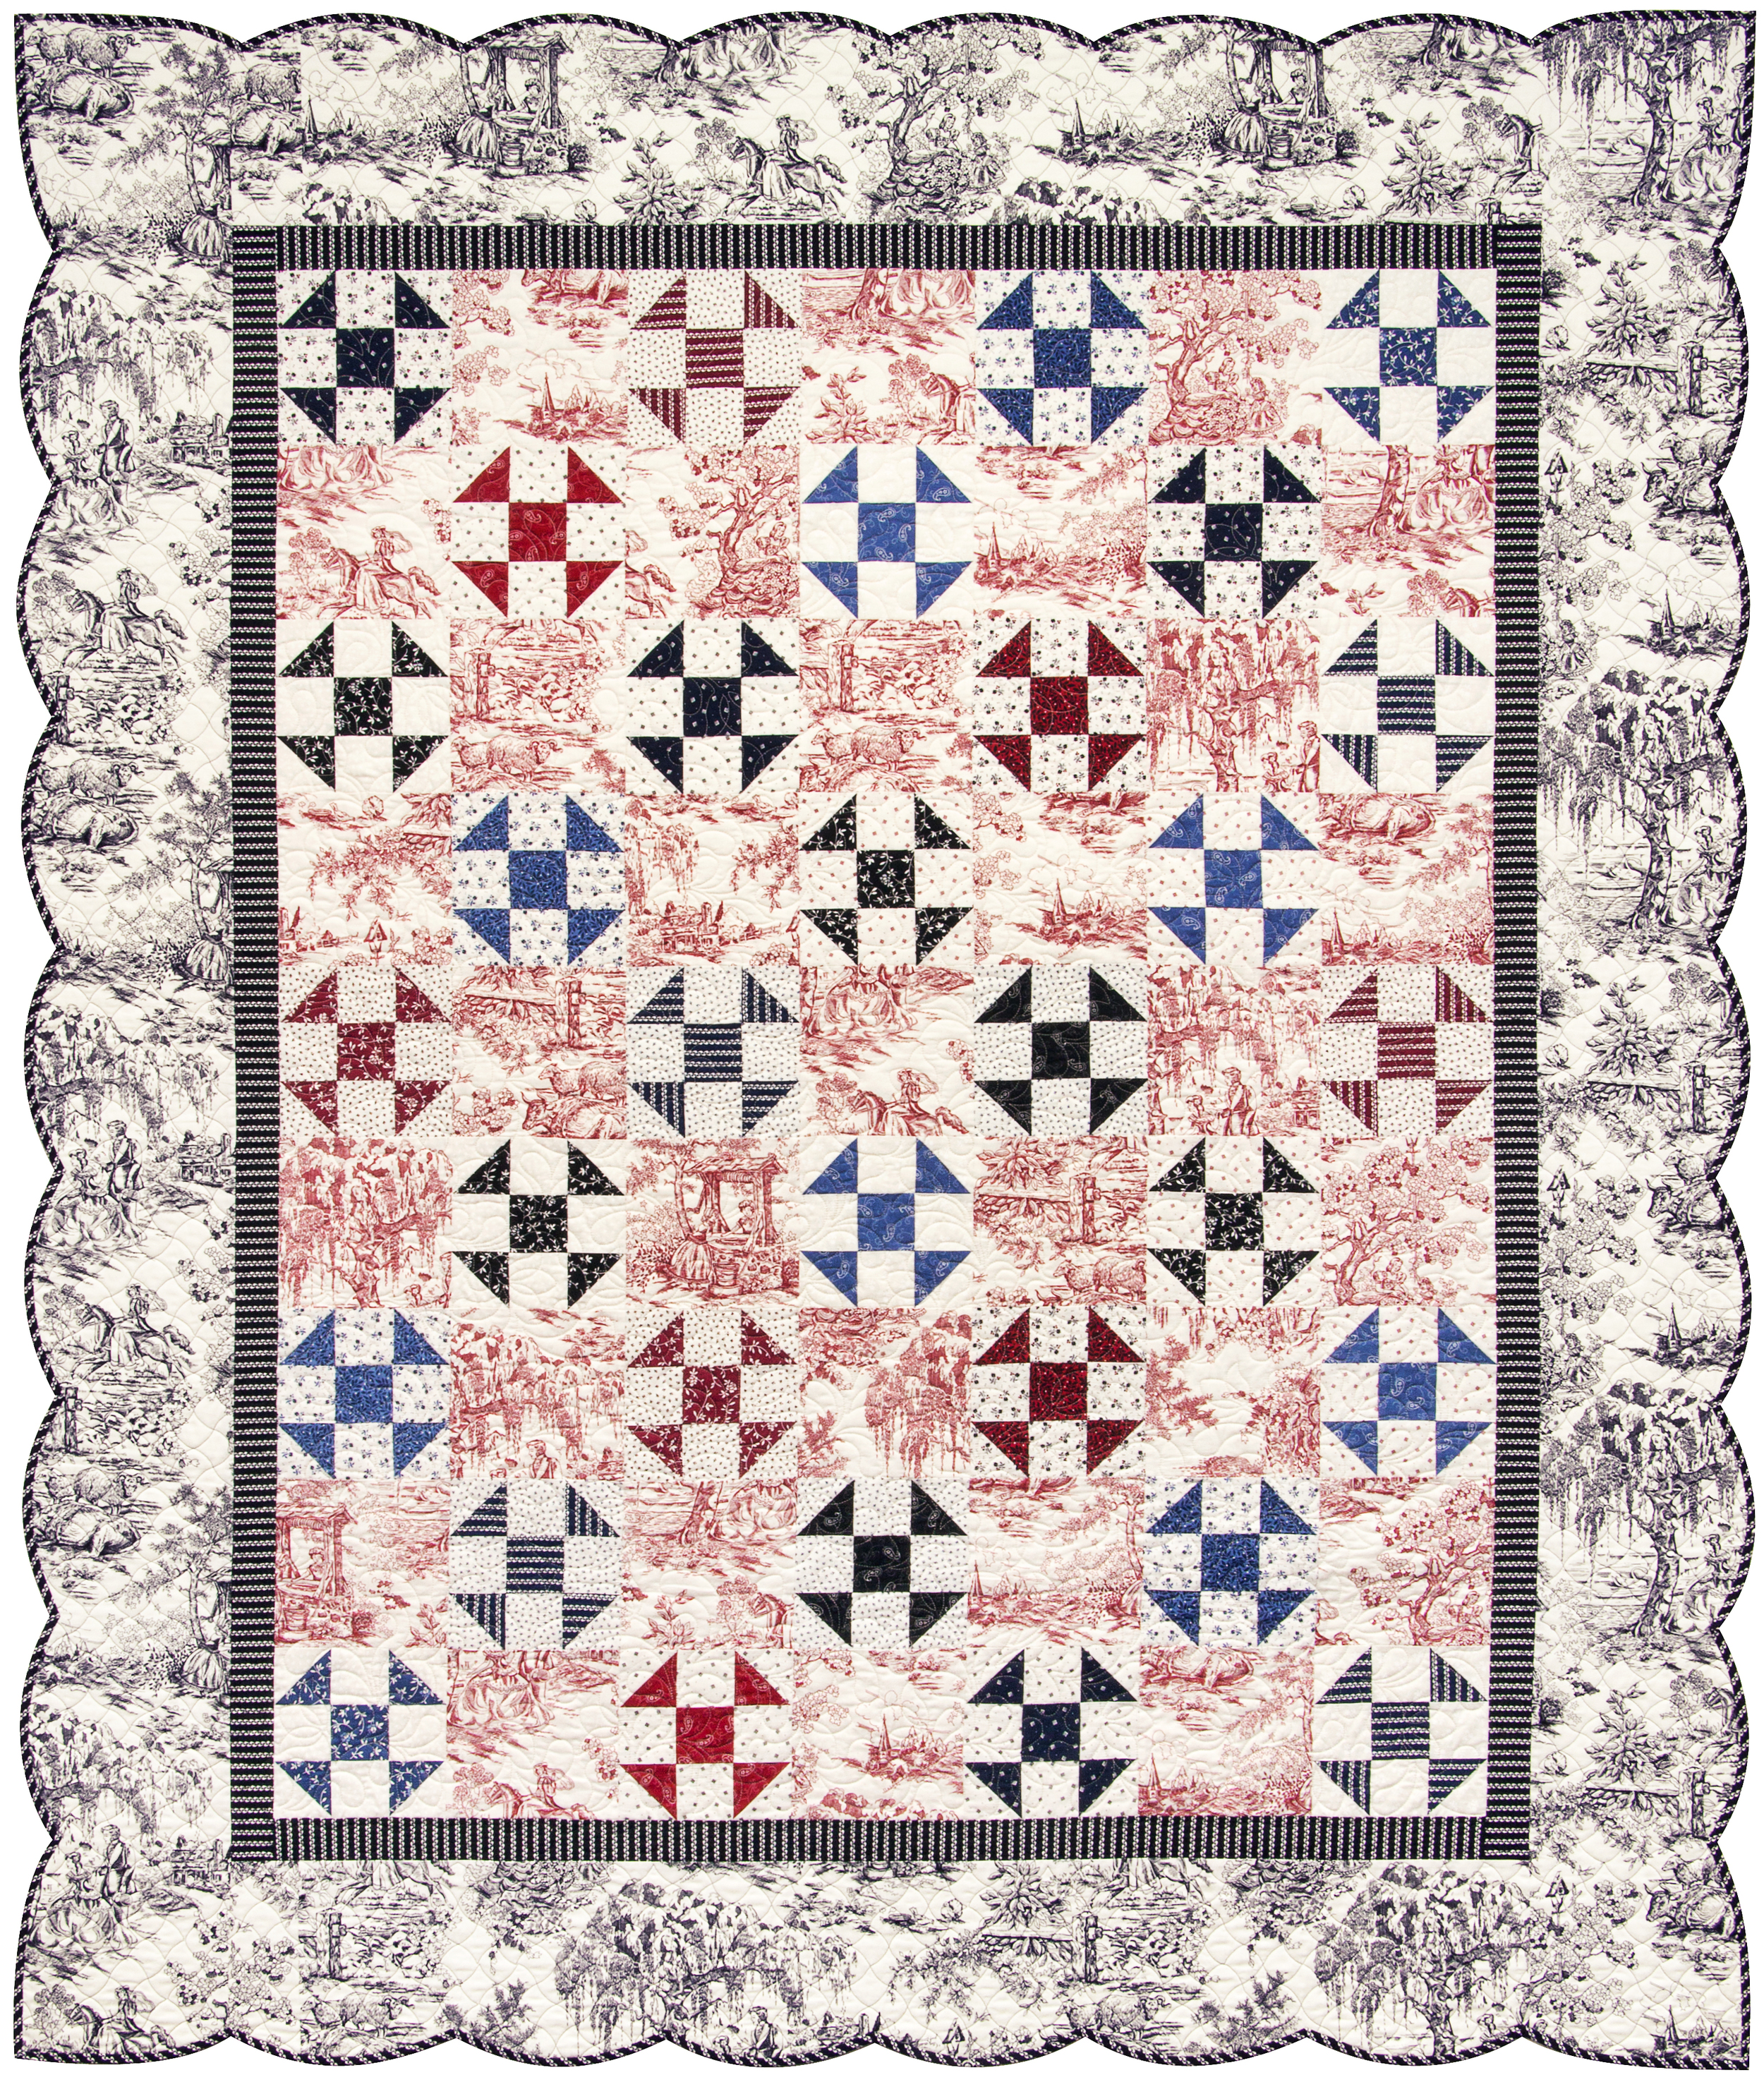 "'Bursting In Air' quilt (62.5"" x 72"")  Download the FREE pattern , designed by Darlene Zimmerman, from our Patterns section at robertkaufman.com."